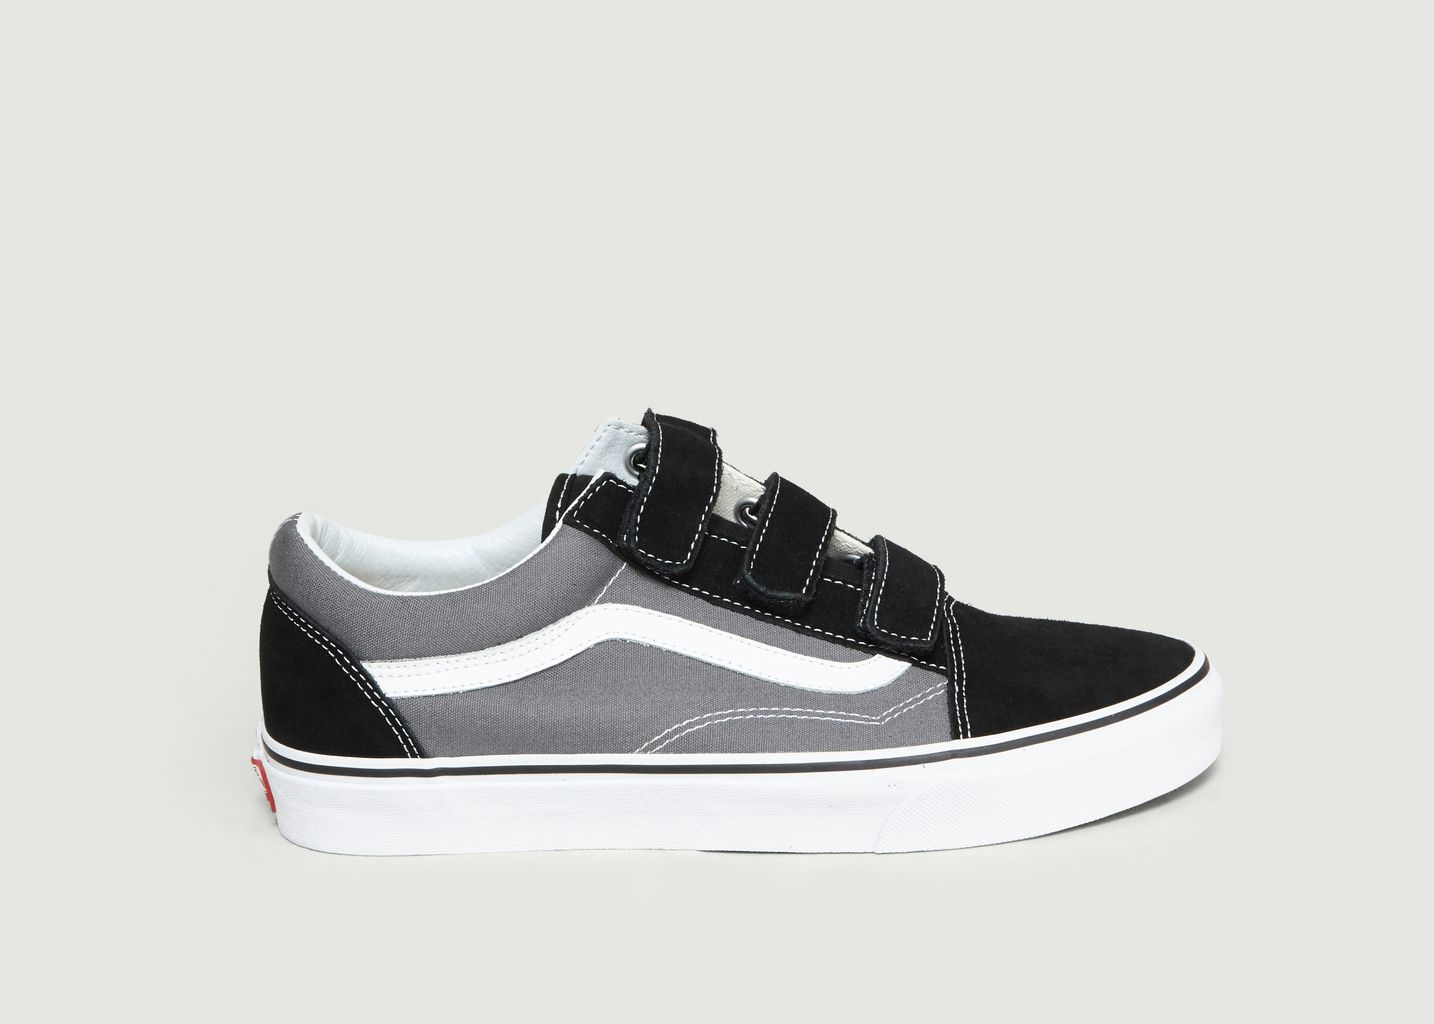 c21569cfb7 Old Skool V Skate Shoes Black Vans